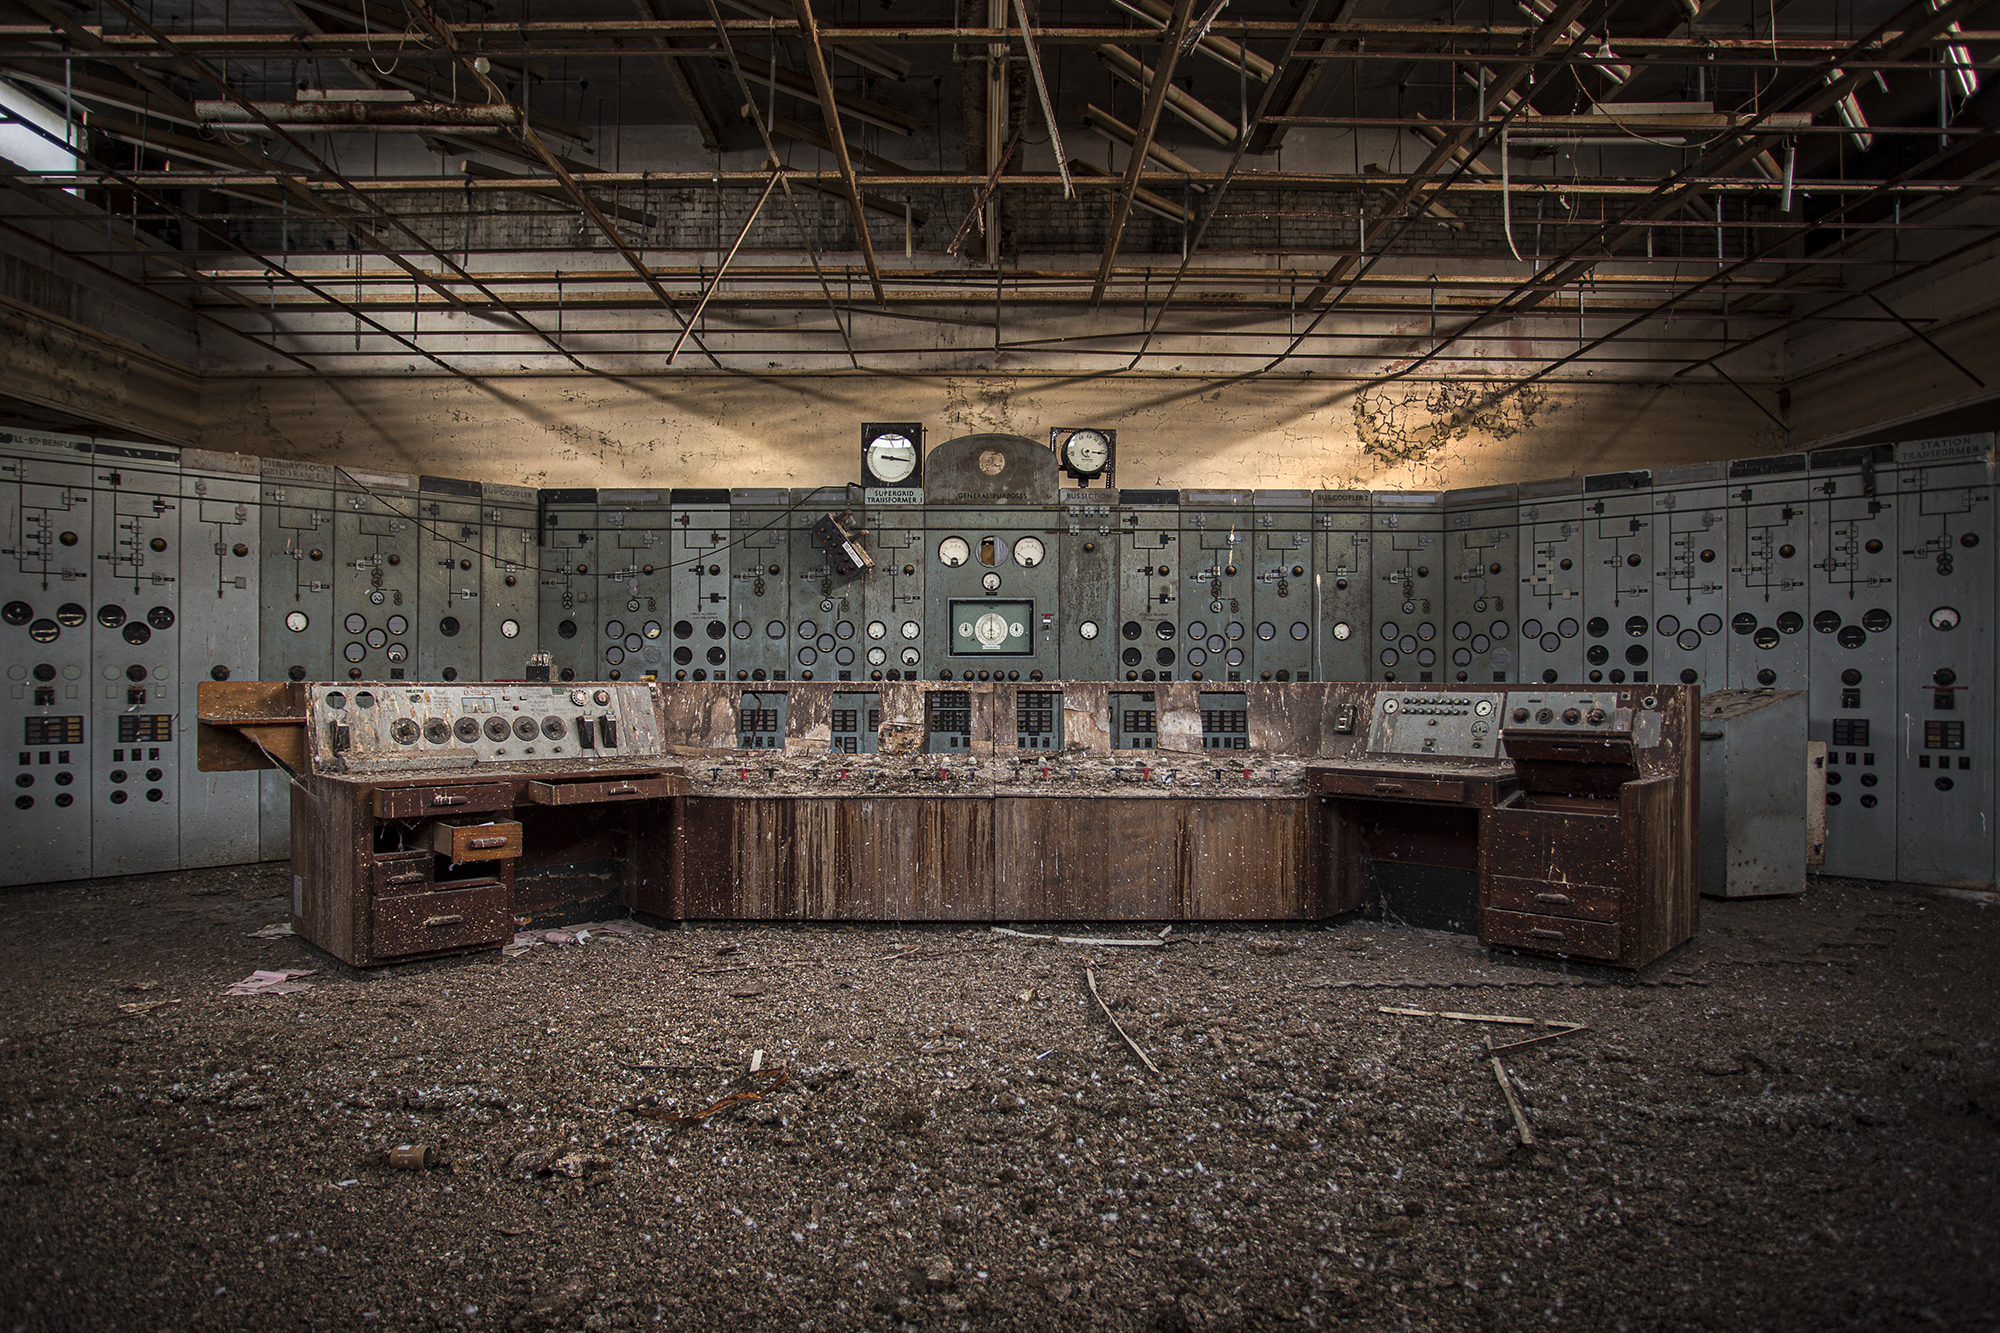 Crumbling Power Station Desk at Sunrise by Dibs McCallum